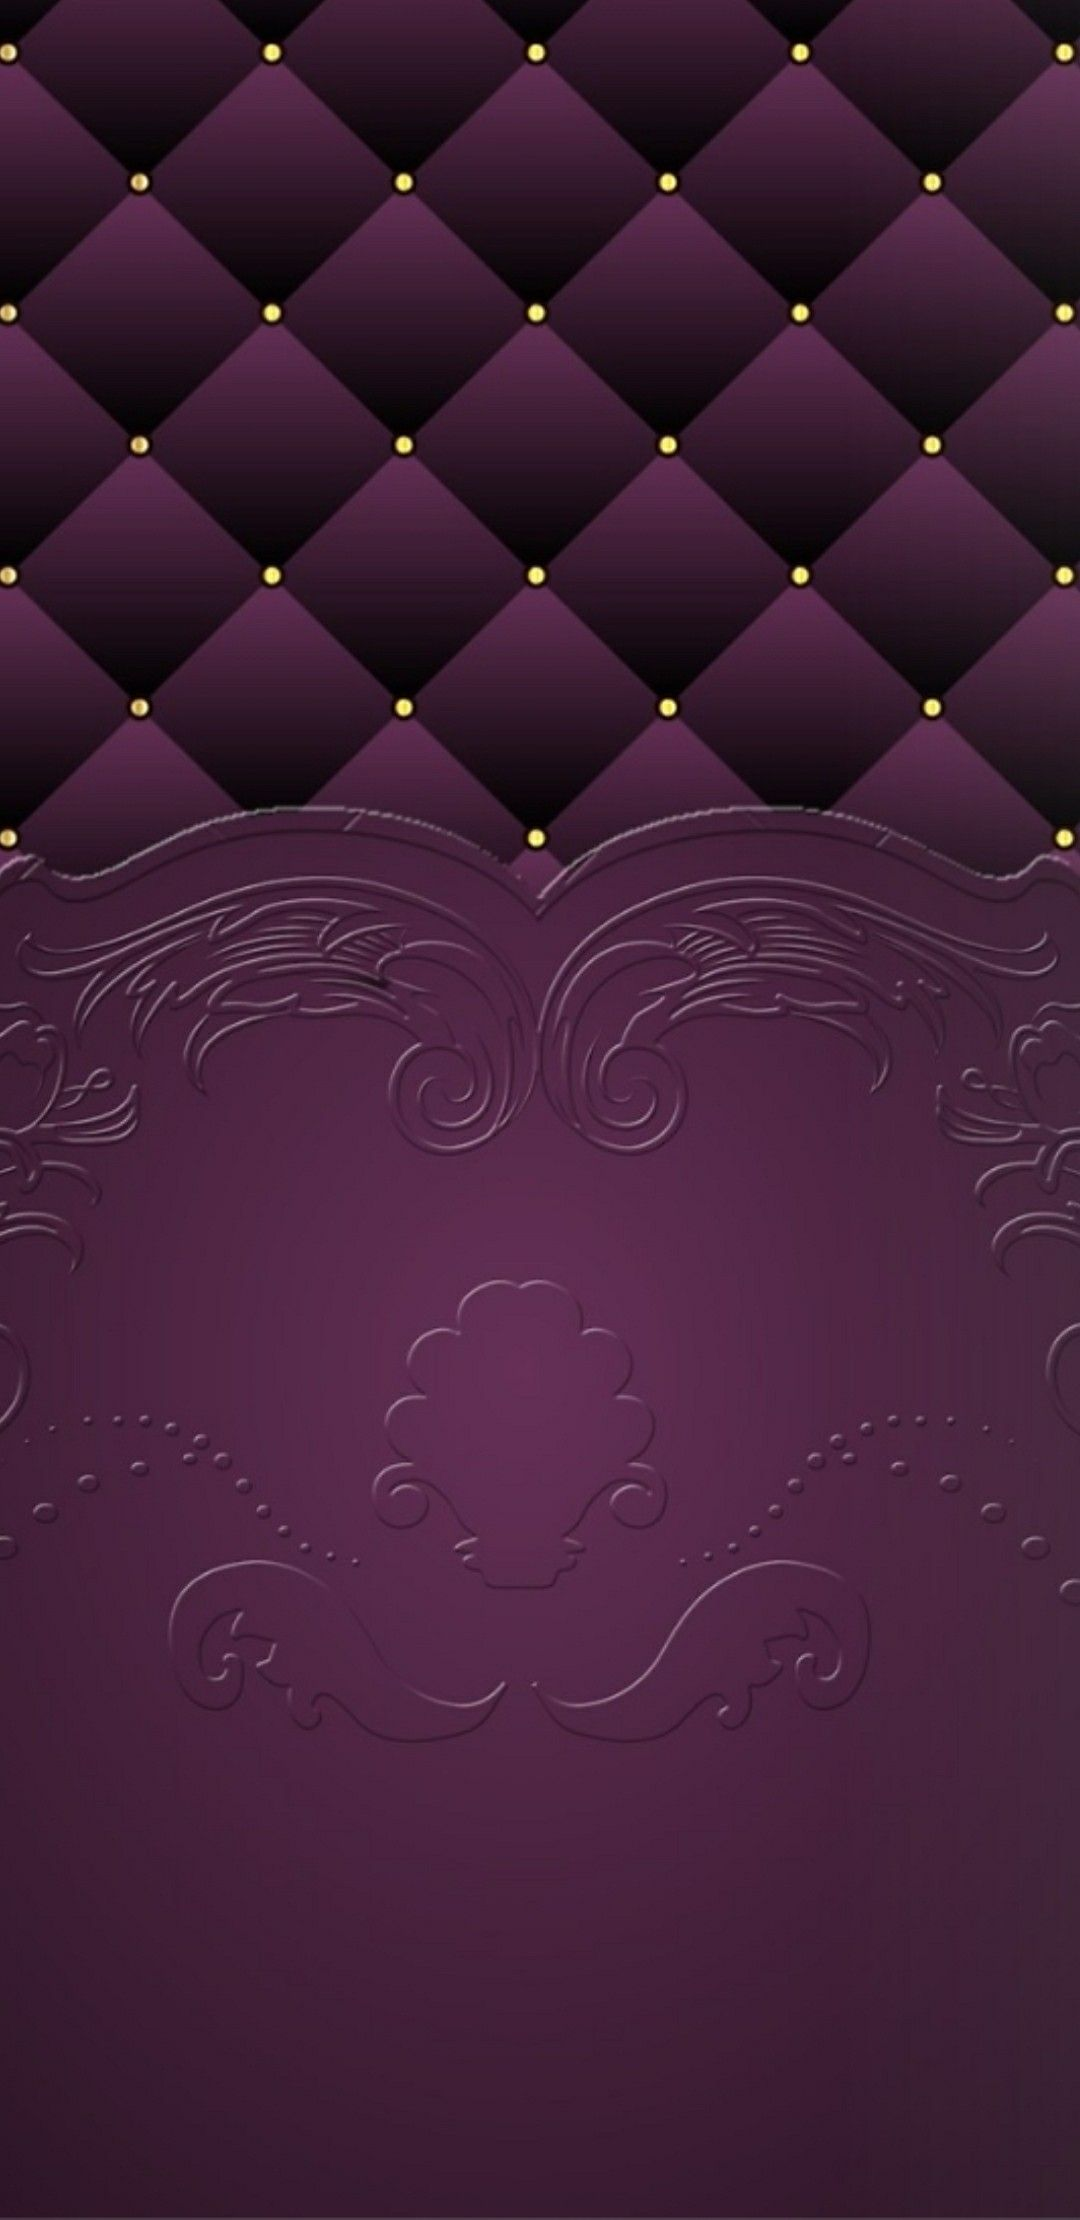 Pin By Linda Parks On Purple Iphone Wallpaper Elegant Purple Wallpaper Wallpaper Iphone Neon